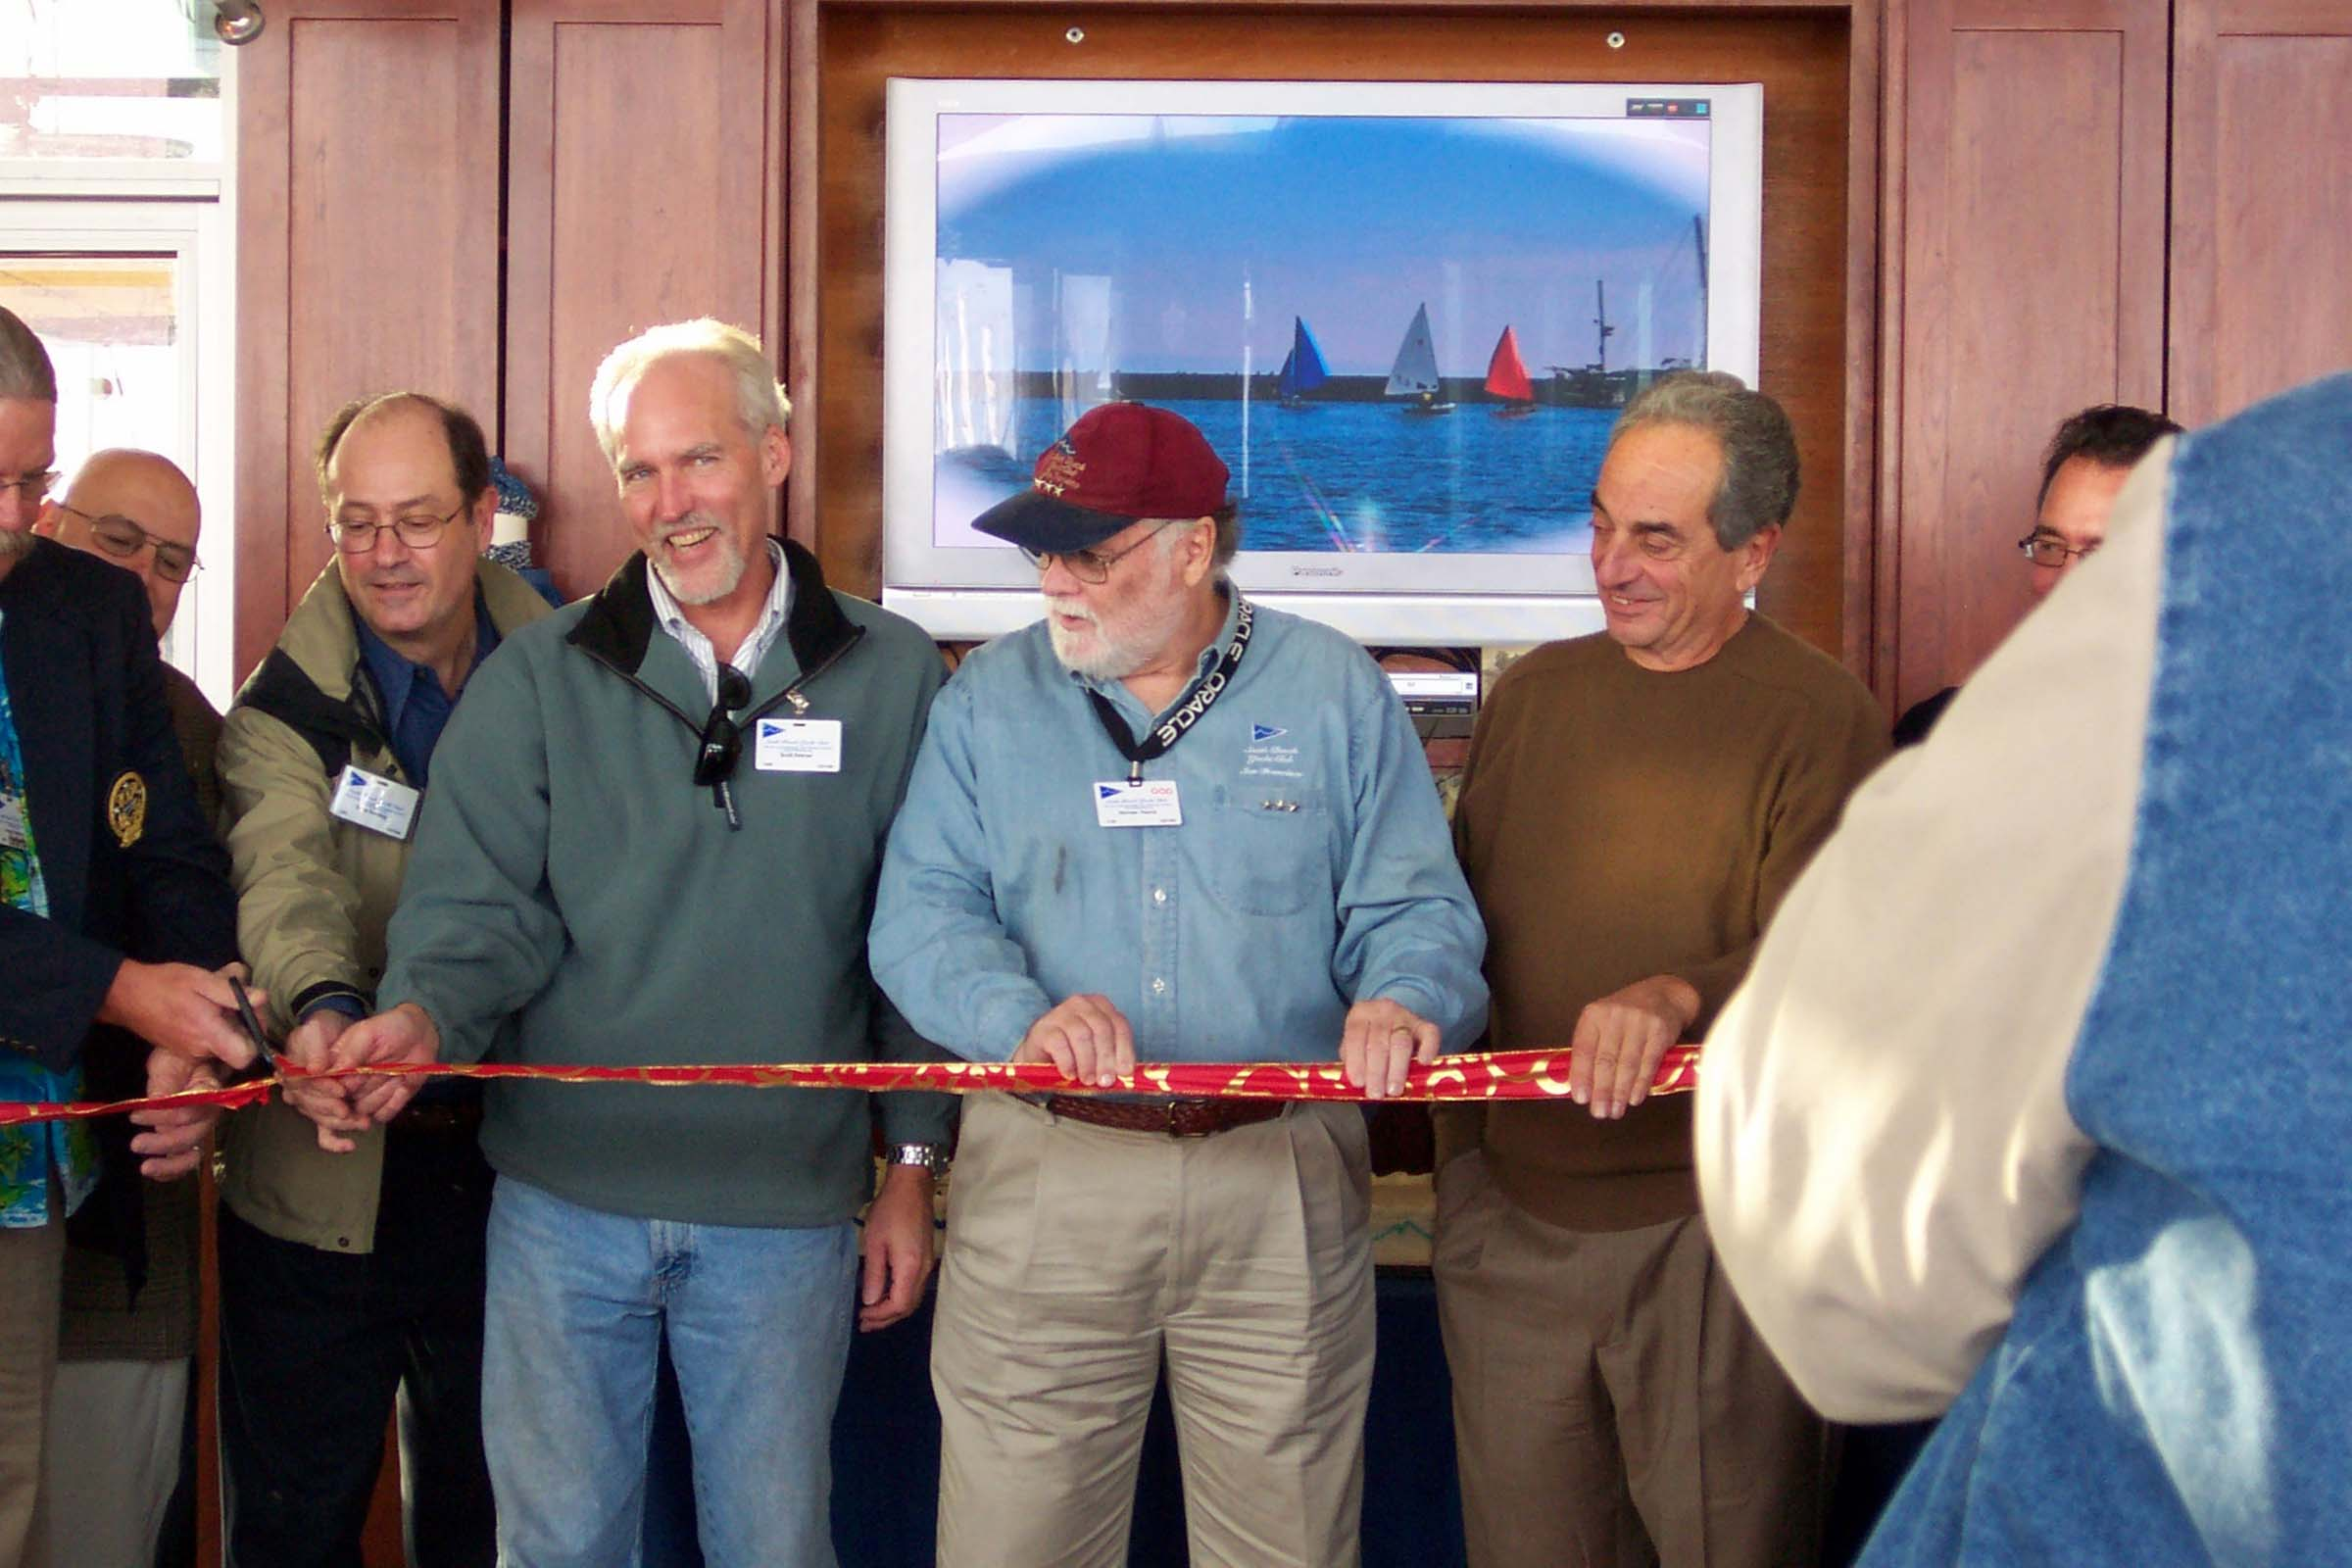 Grand Opening, Ribbon Cutting